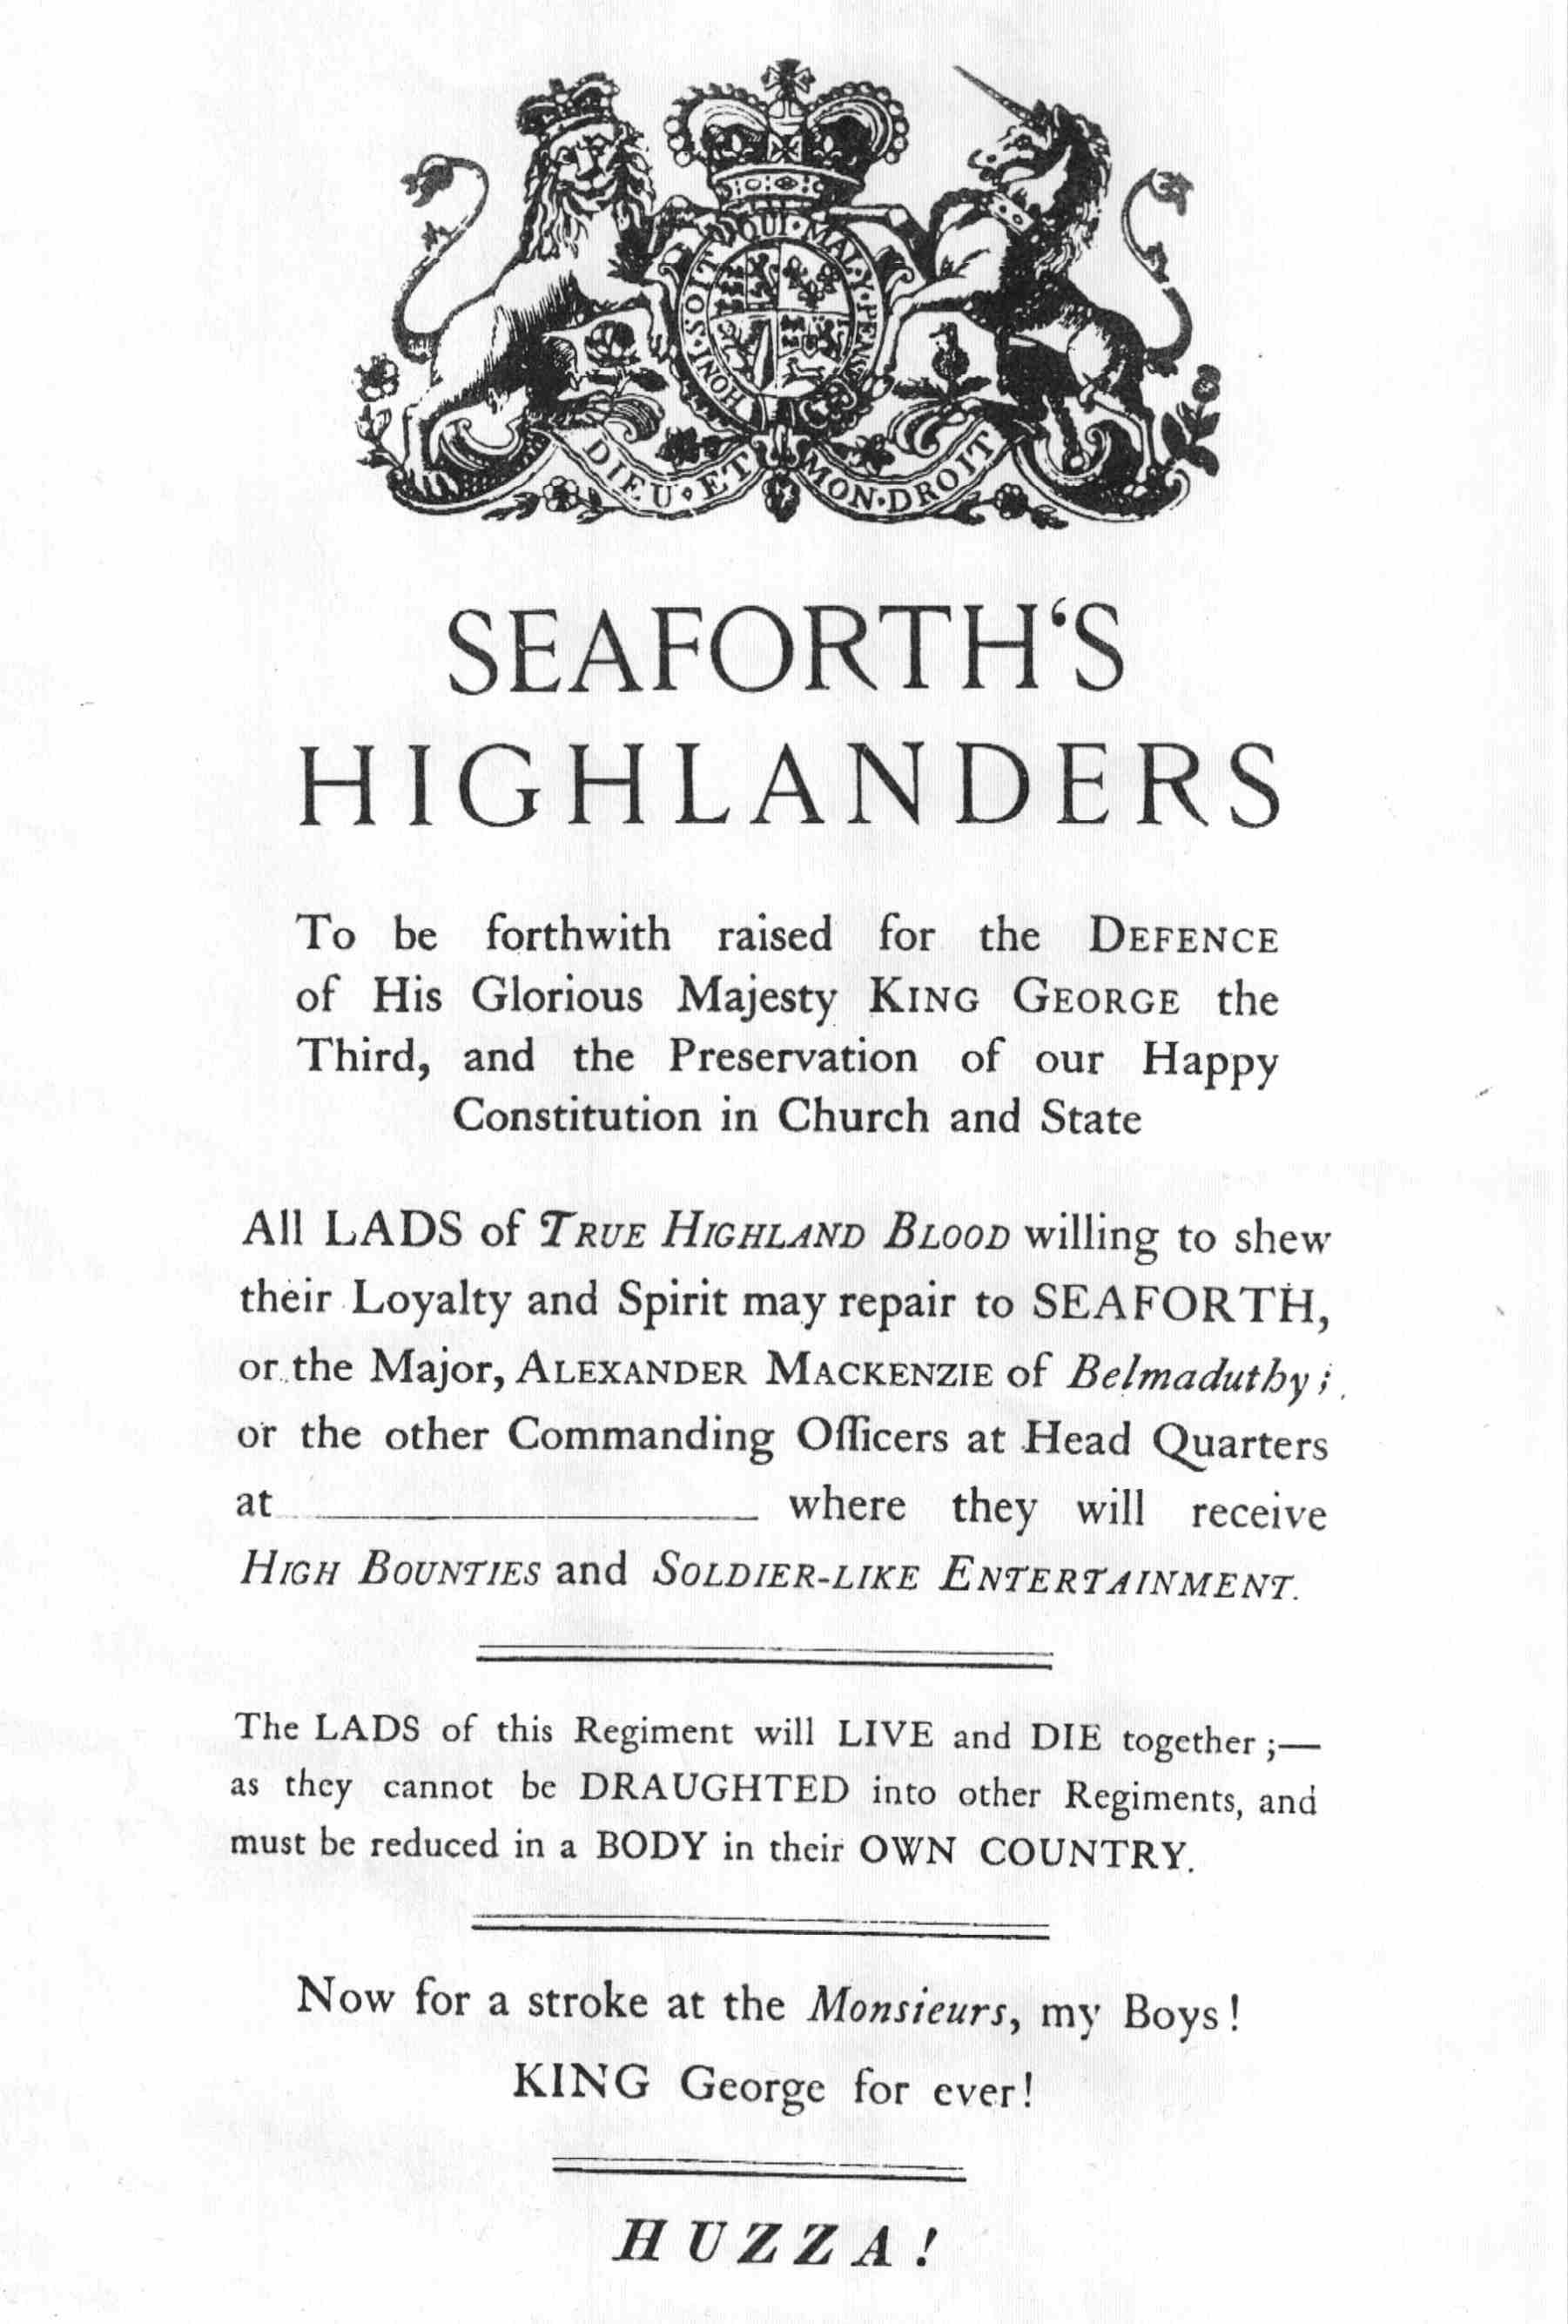 Seaforth Highlanders Recruiting Poster 1793